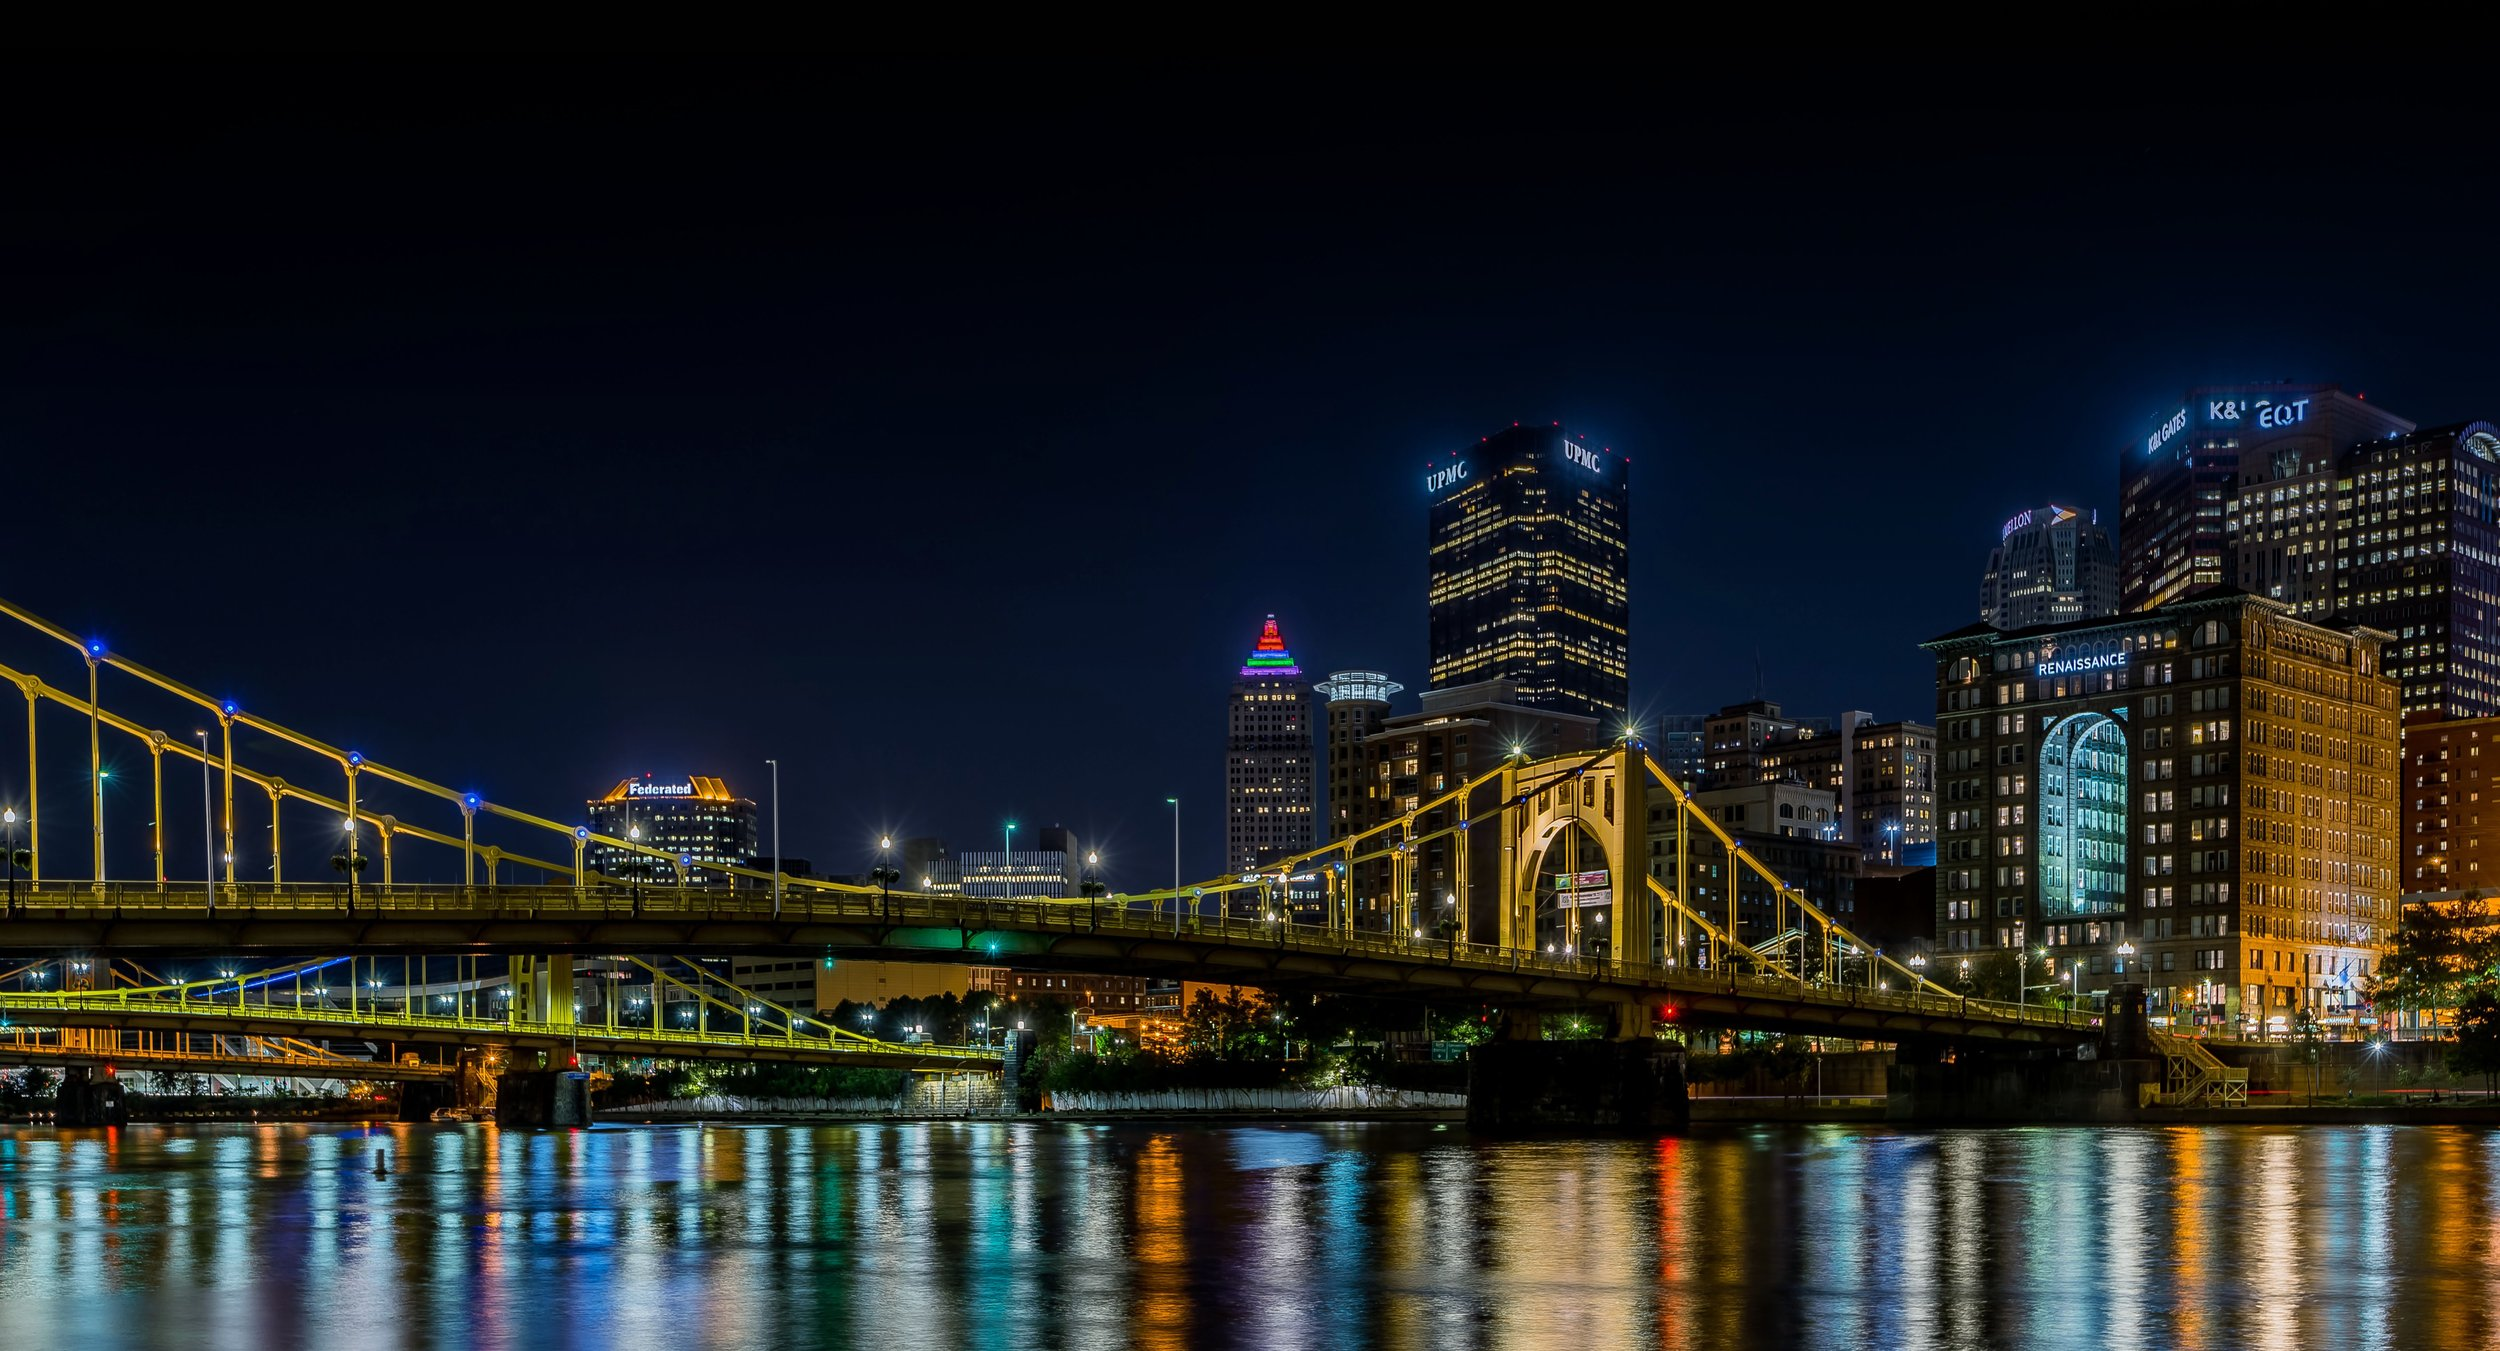 The Three Sisters Bridge (click the image to view full size)